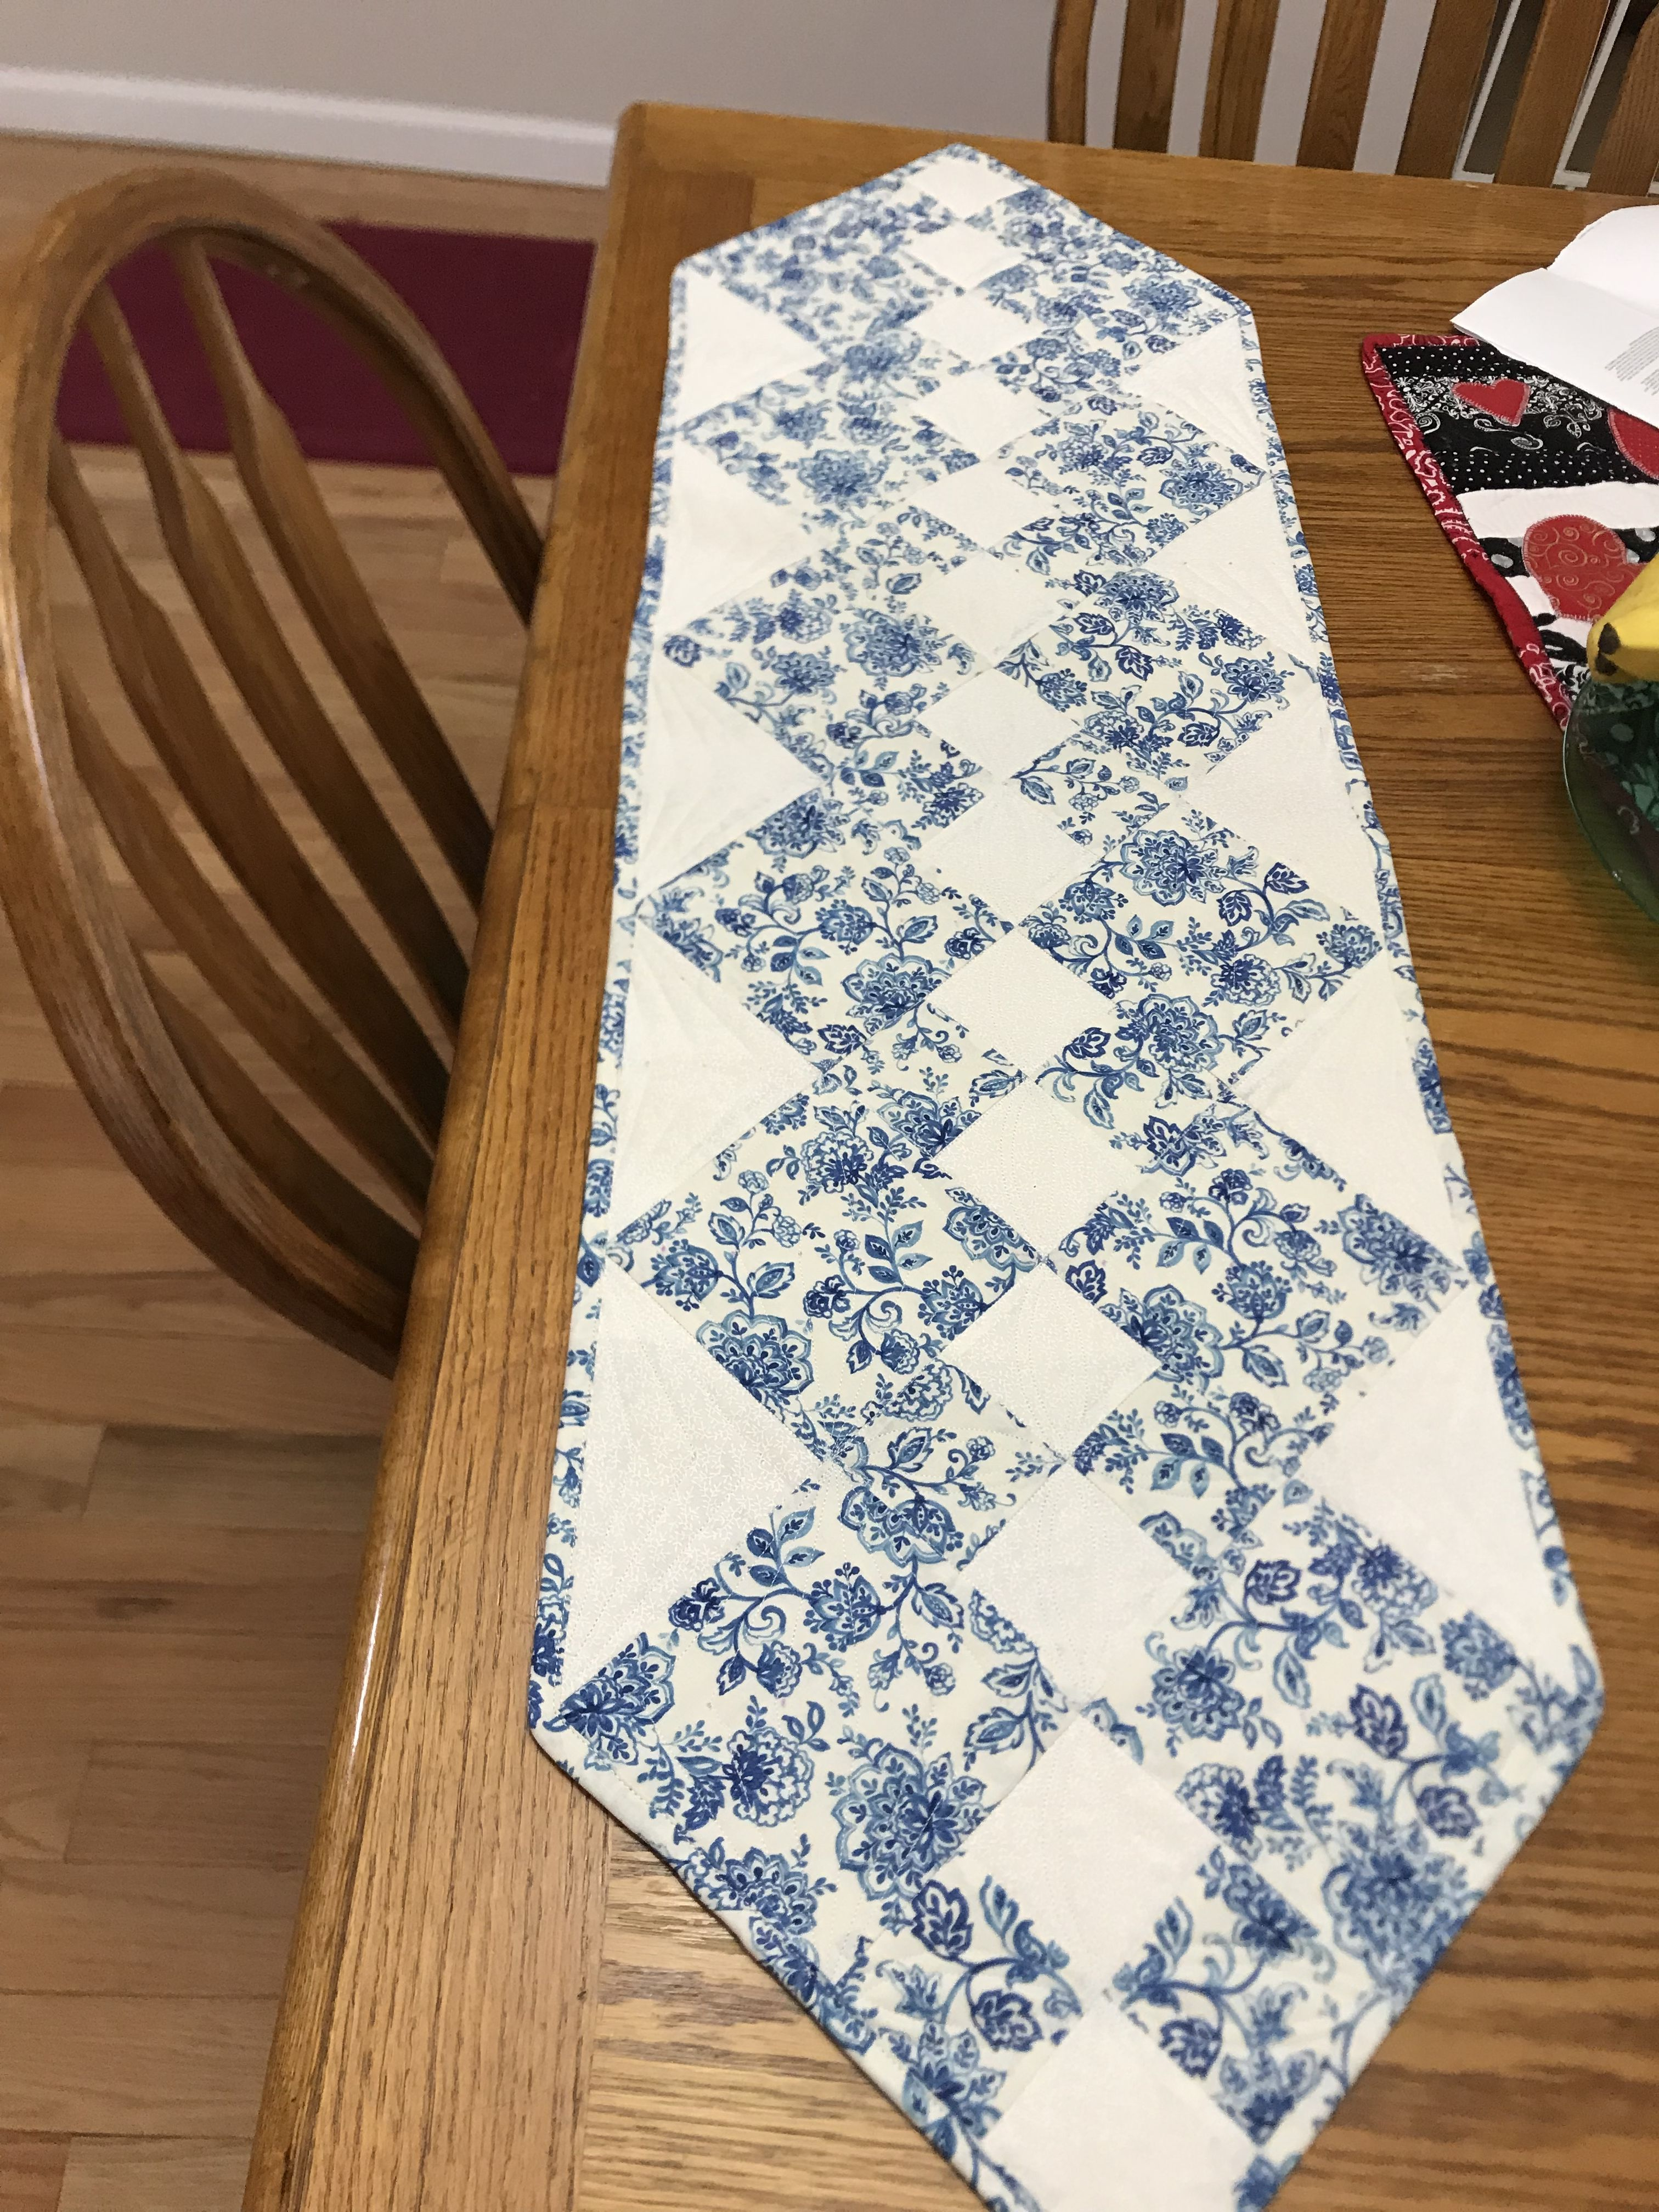 A French Country Style Table Runner For My Daughter 2018